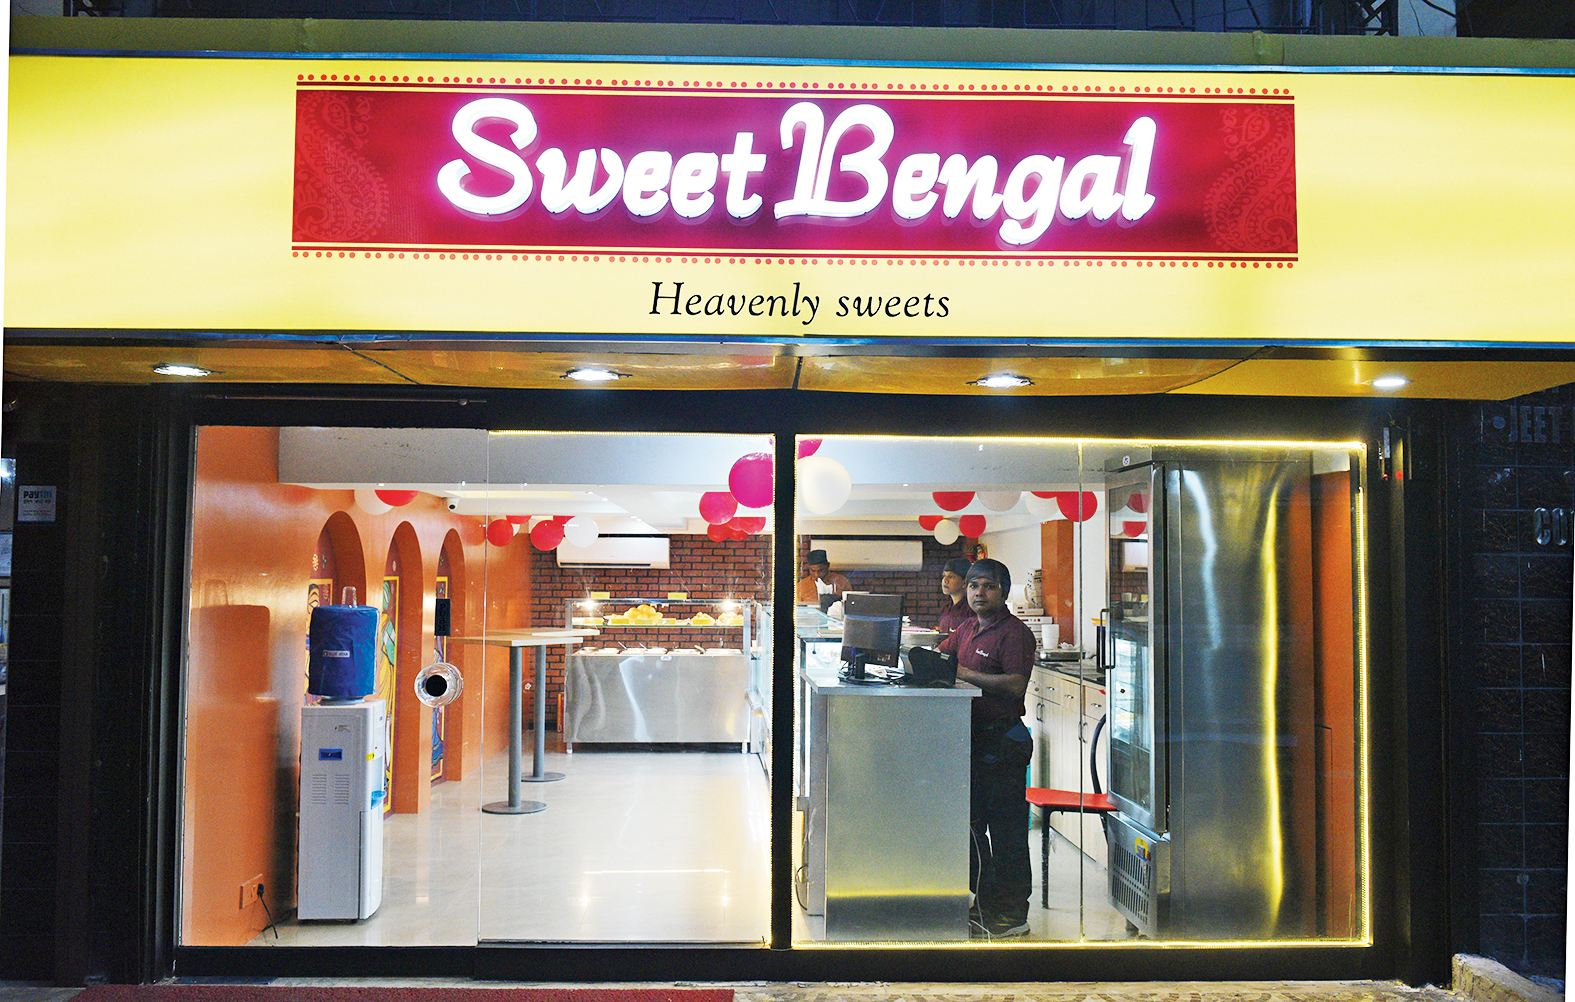 The CIT Road, Kolkata outlet of Sweet Bengal.